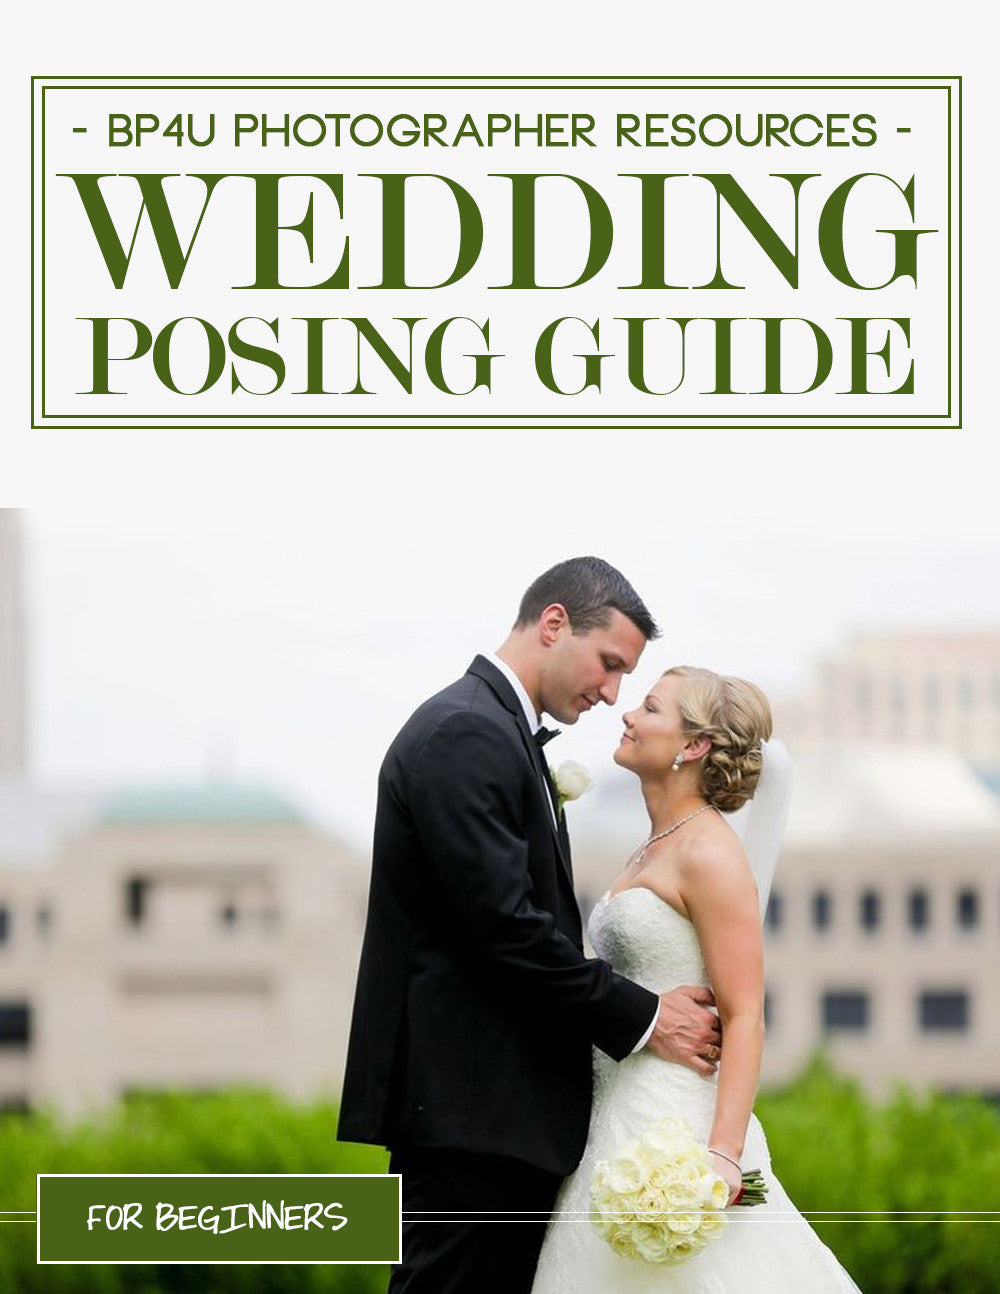 Wedding Photography Guide To Posing: Wedding Photography For Beginners